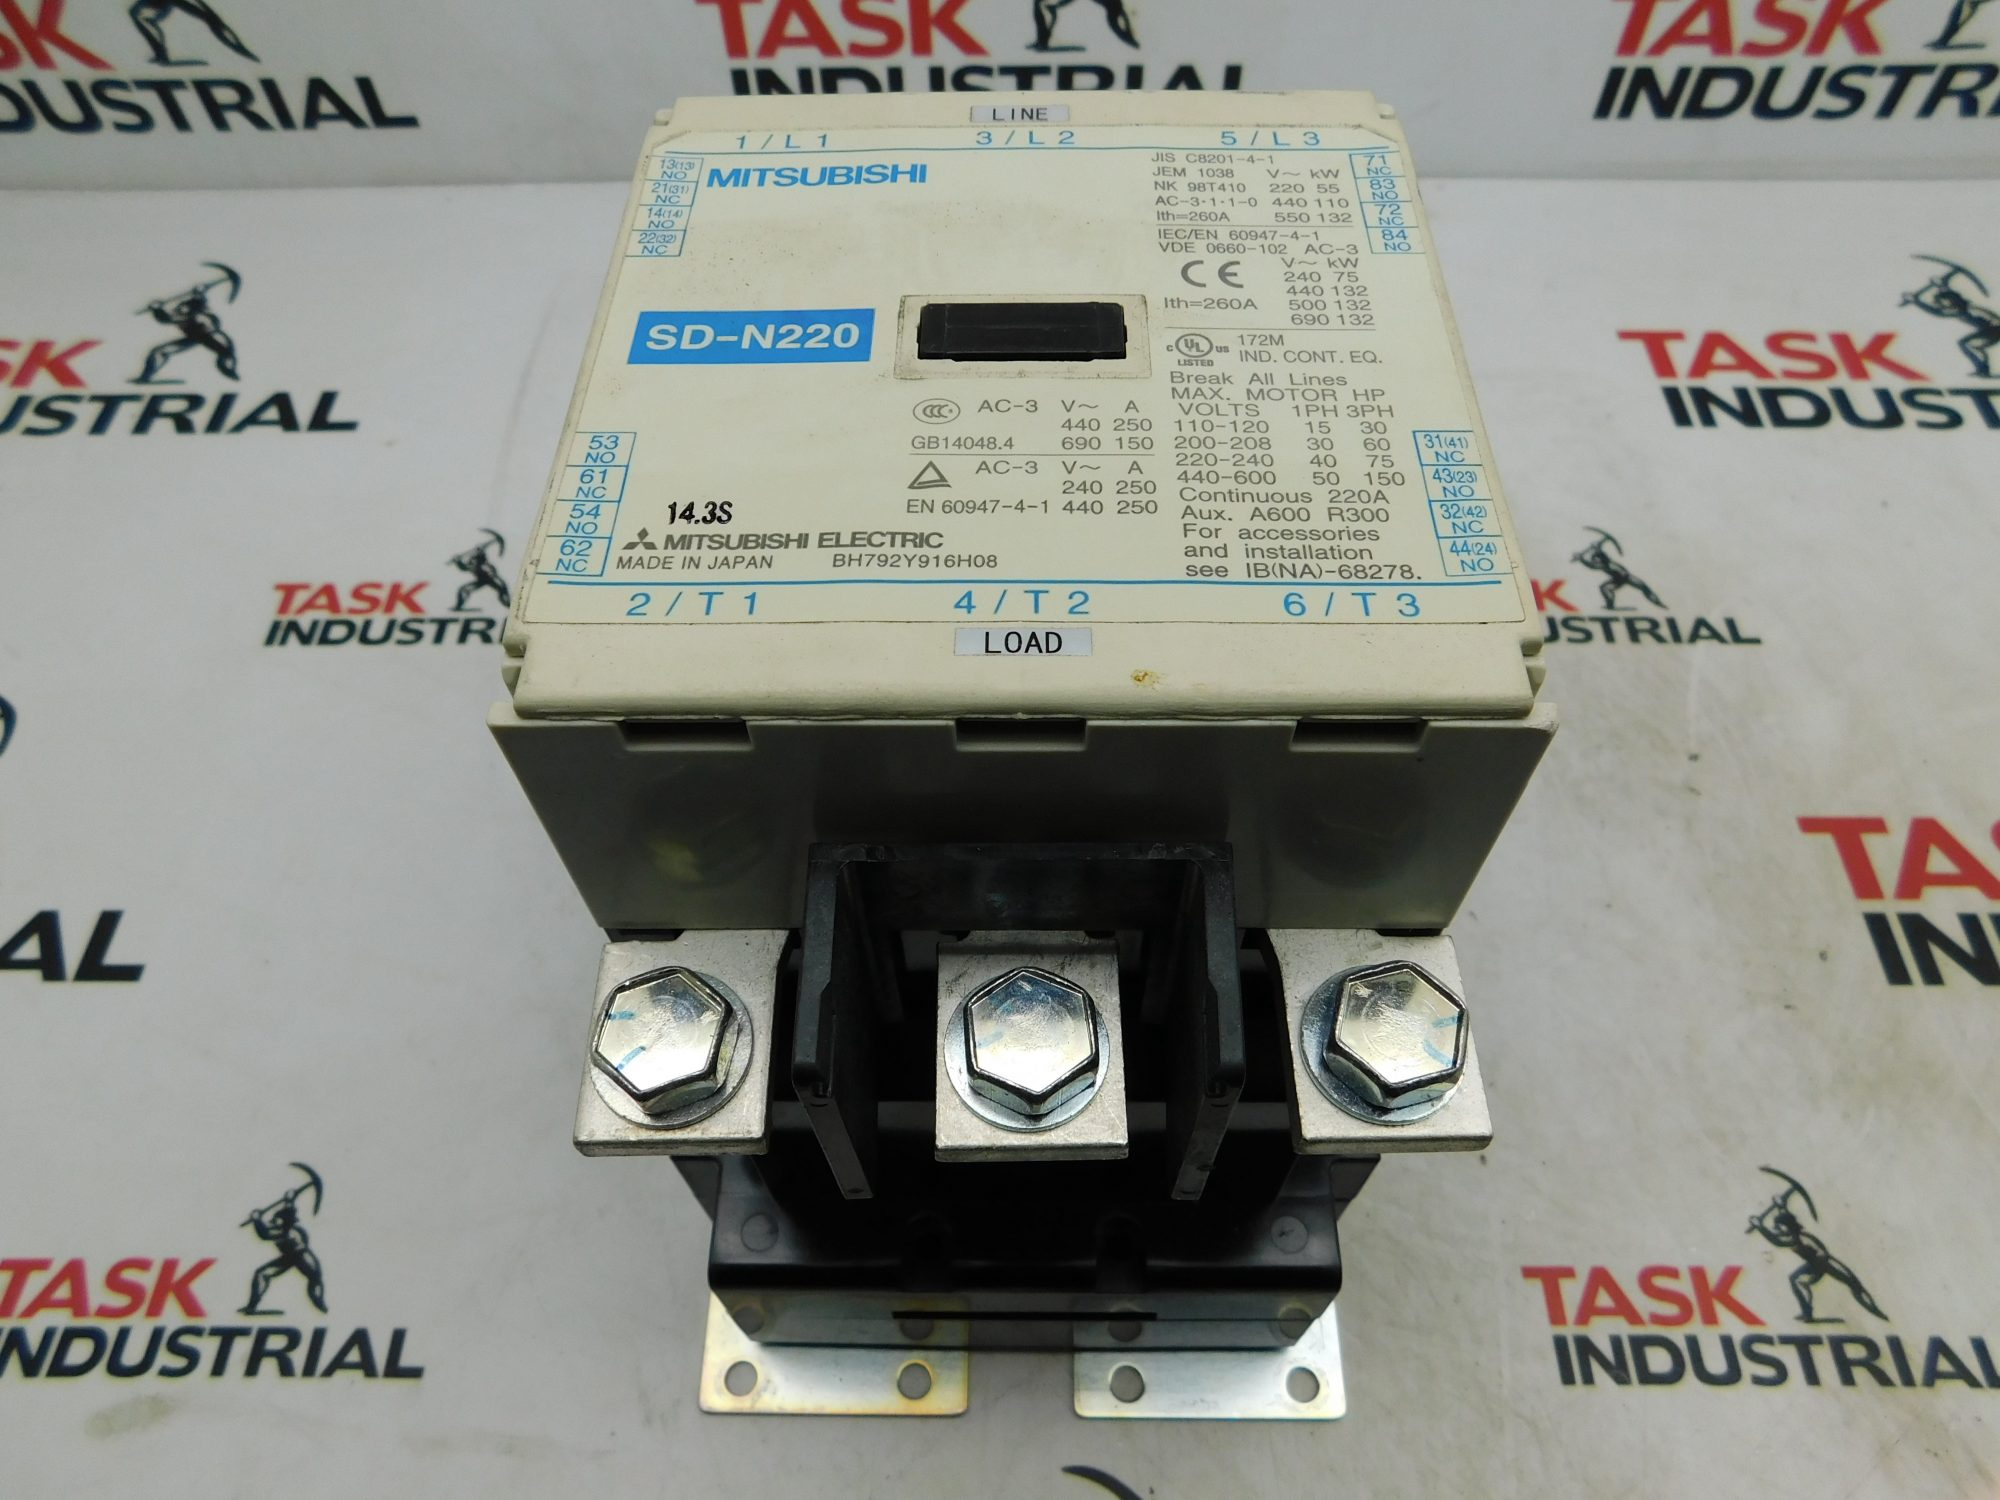 Mitsubishi Magnetic Contactor SD-N220 3 Pole